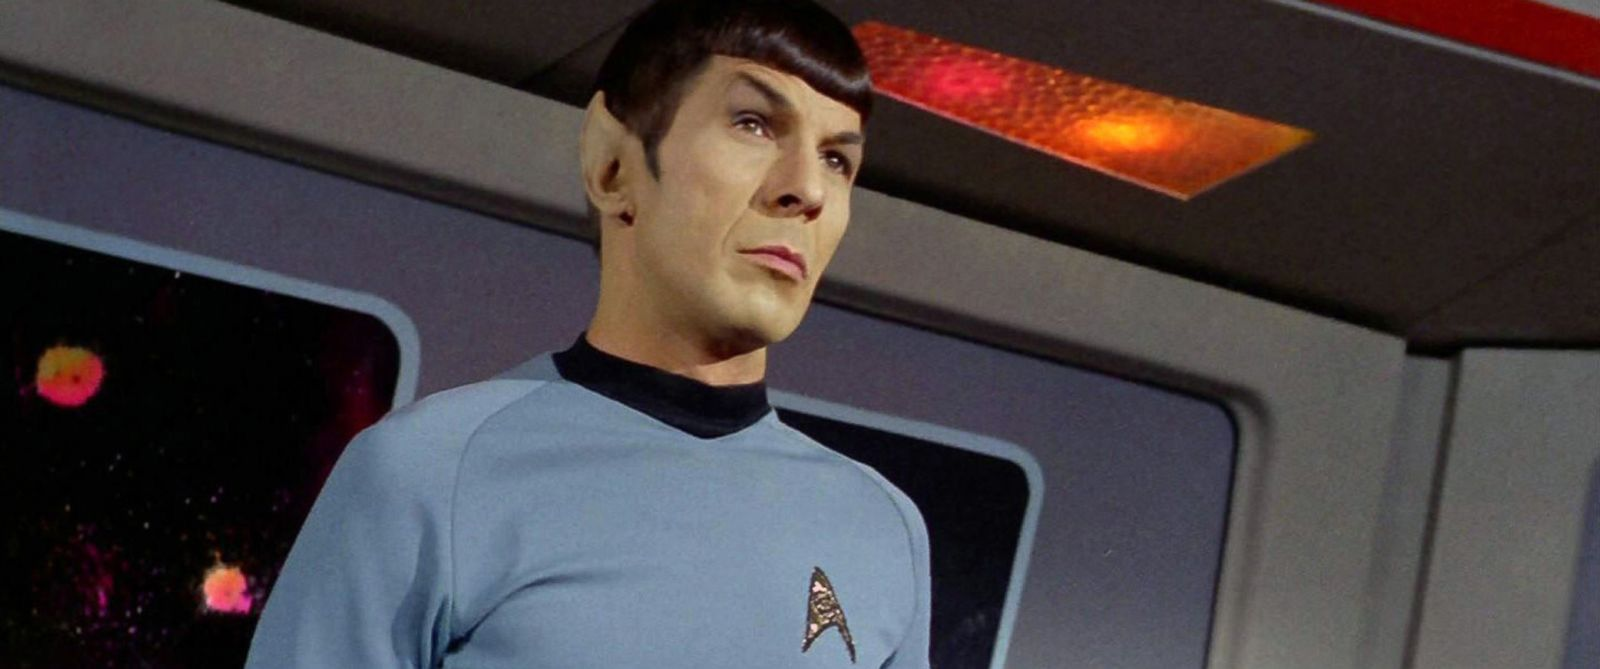 "PHOTO: Leonard Nimoy as Mr. Spock in the Star Trek episode, ""Spocks Brain"" which aired on September 20, 1968."